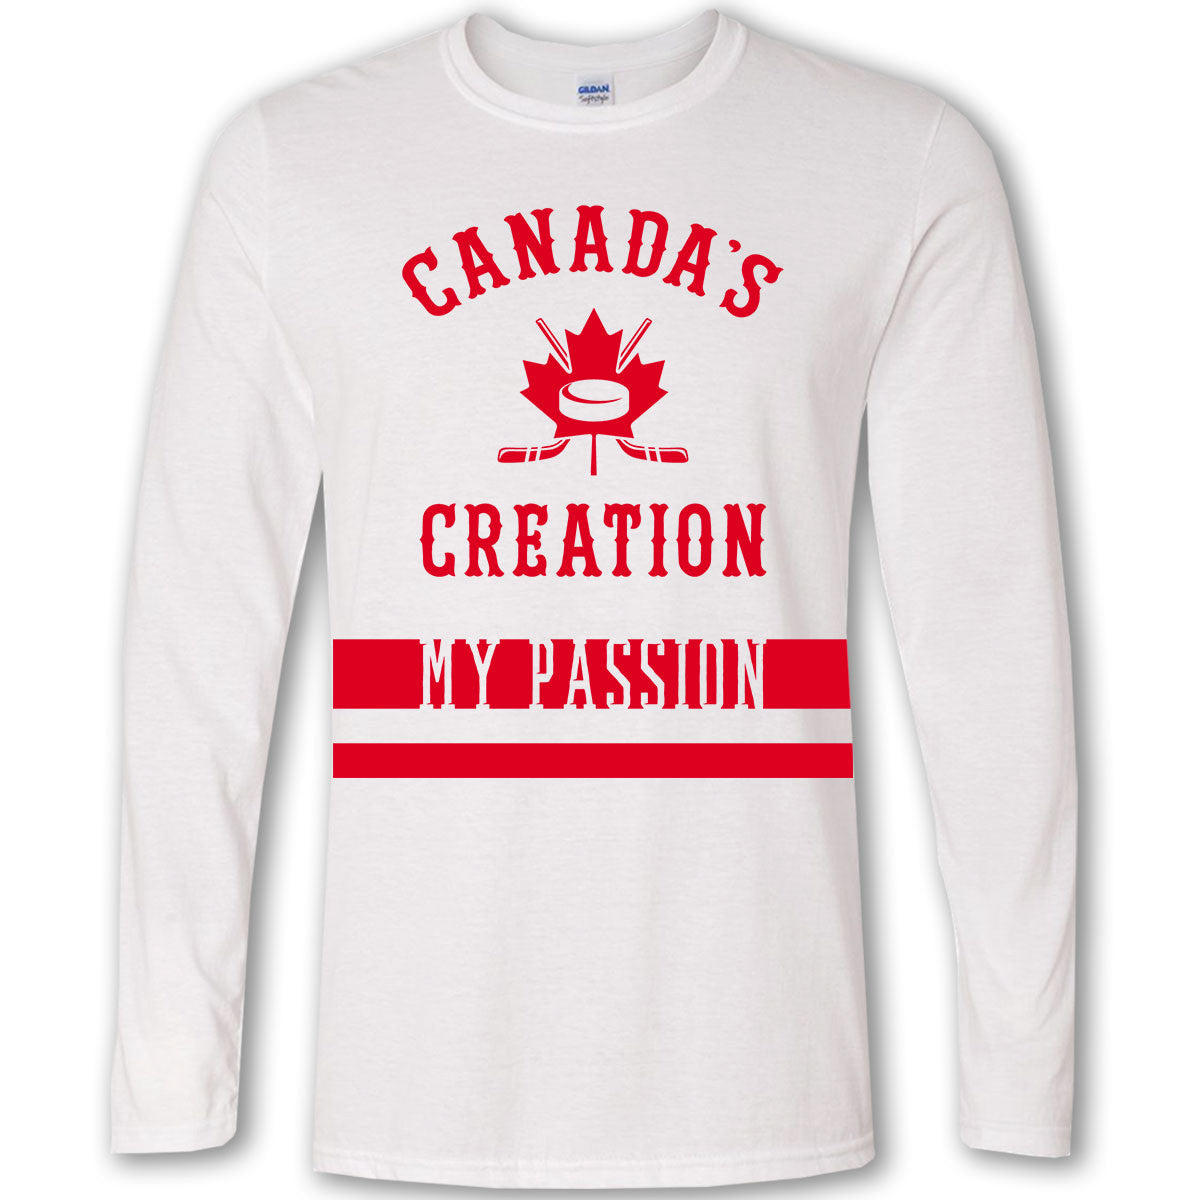 the creation of canada The idea for a union was first created three years earlier by some of canada's  founding fathers, including john a macdonald, george-étienne.